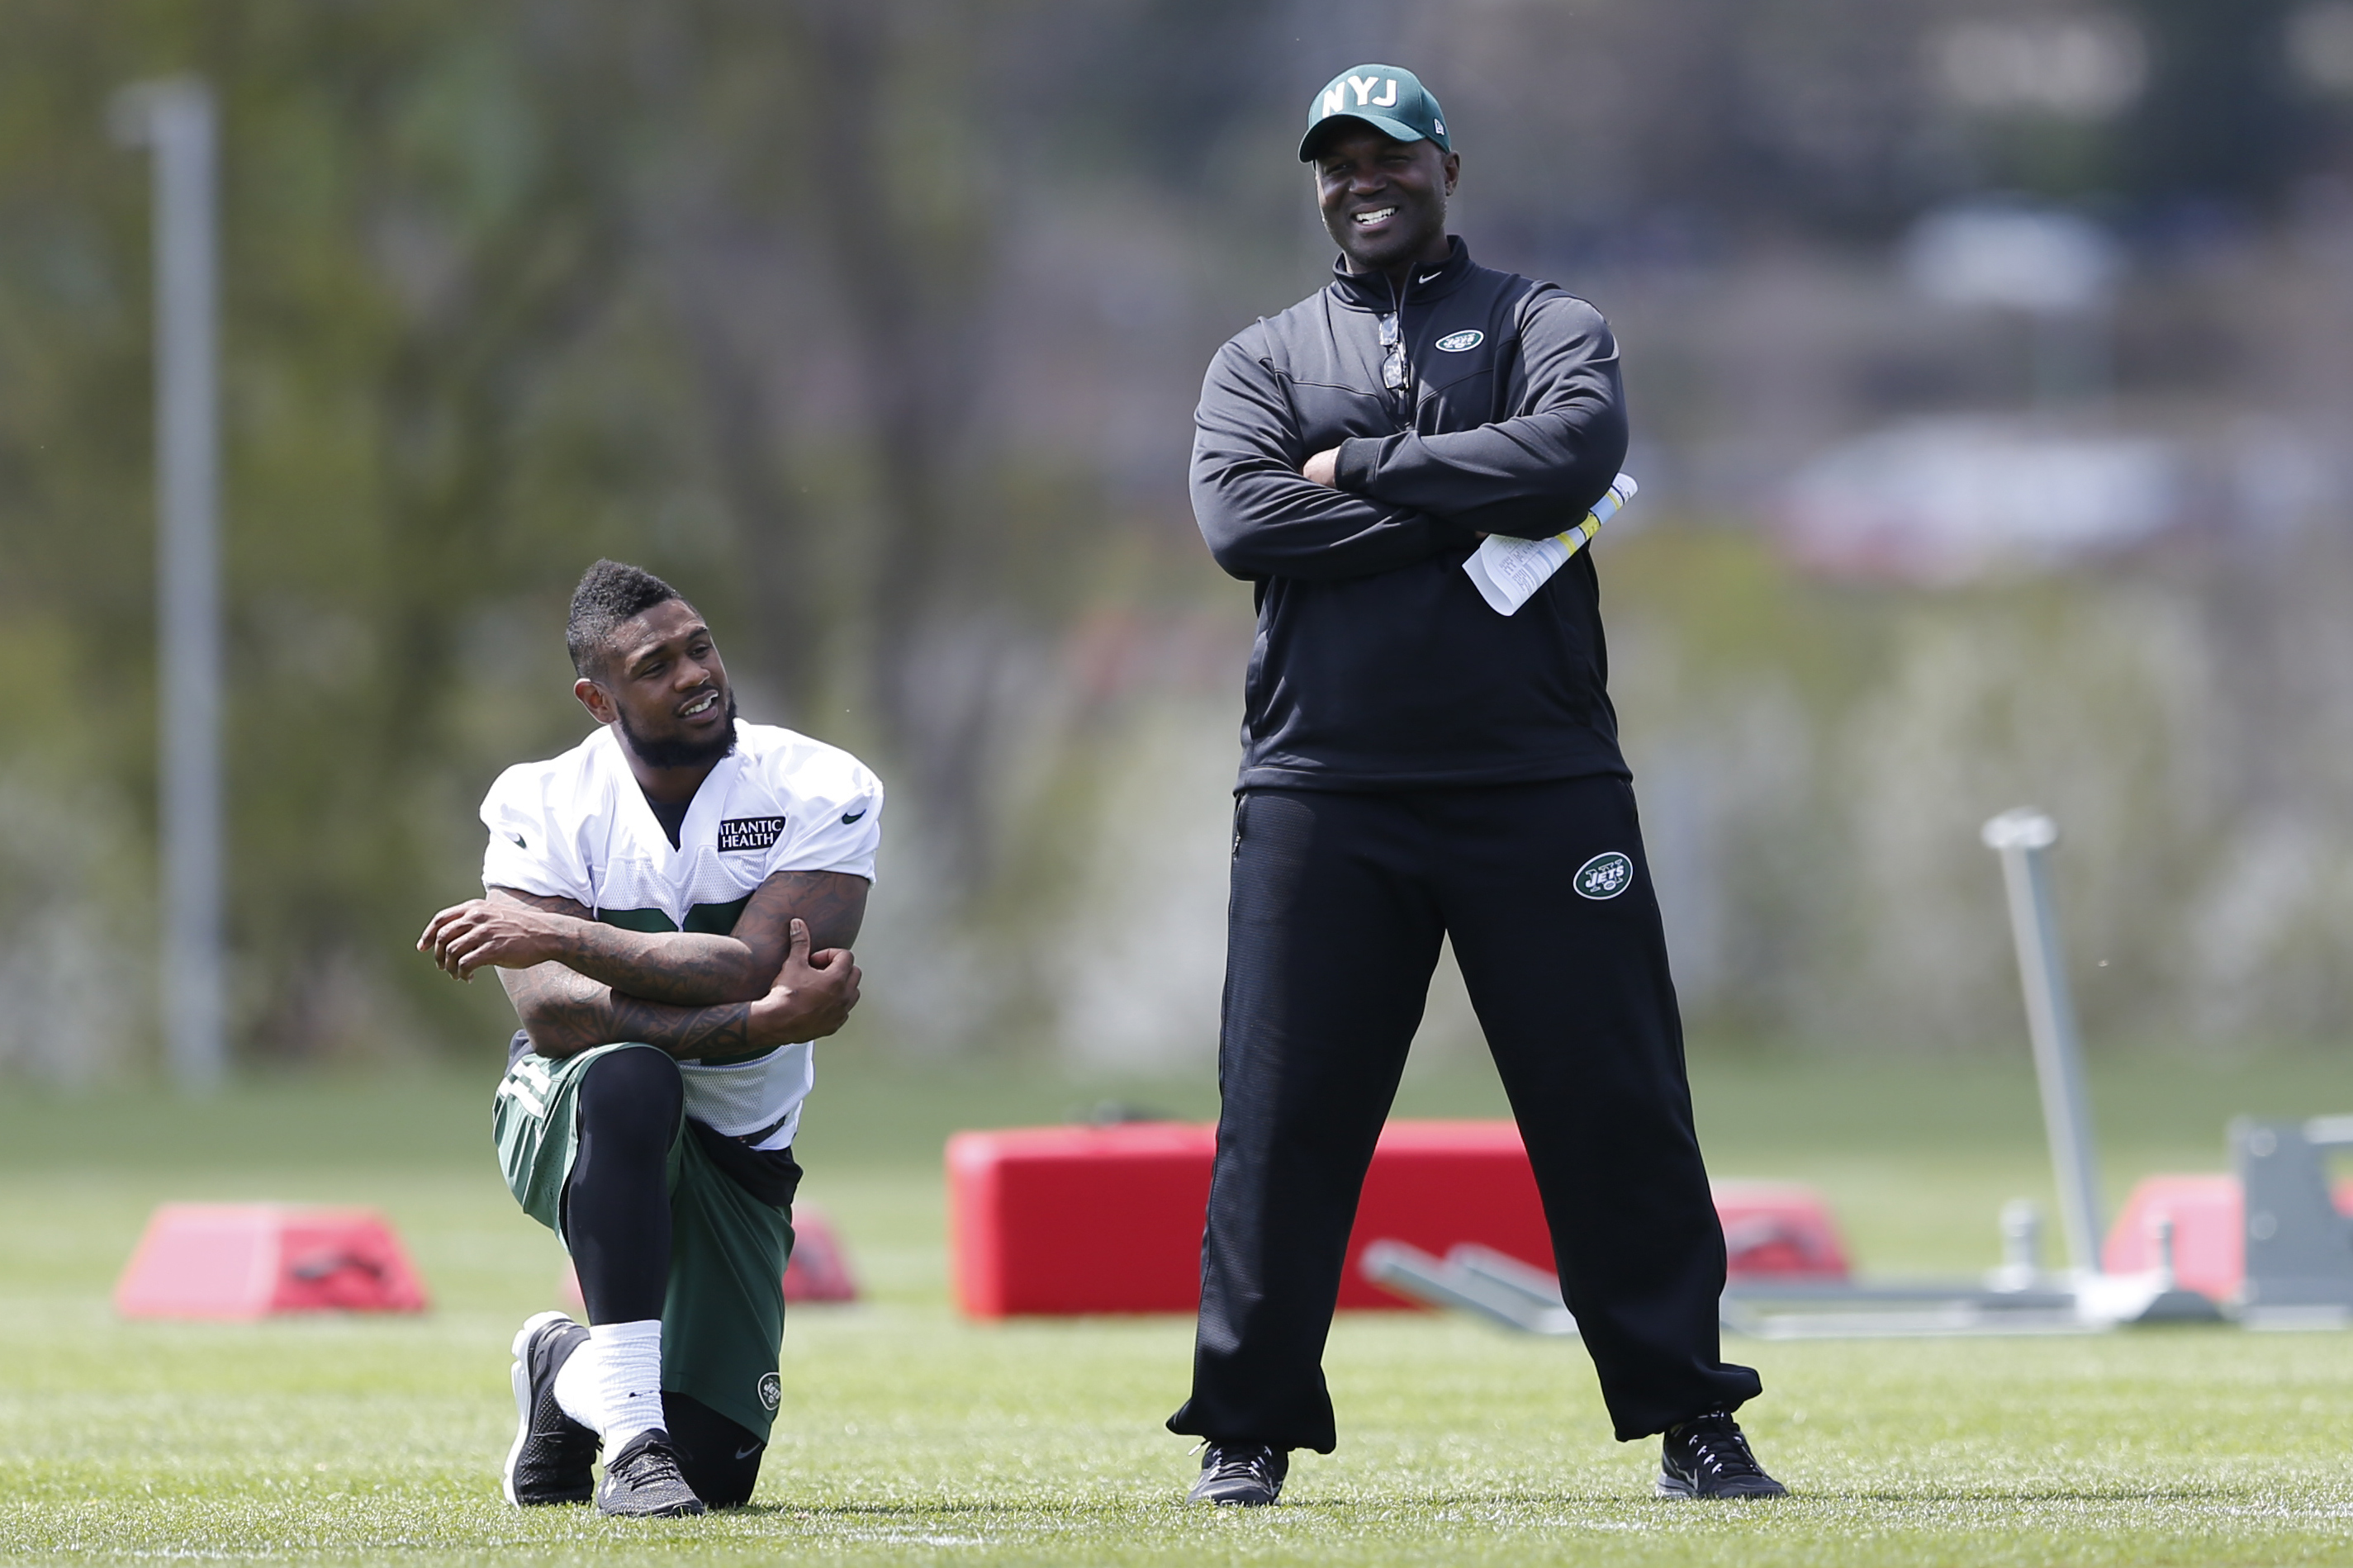 New York Jets head coach Todd Bowles, right, talks to running back Stevan Ridley during voluntary minicamp ahead of the NFL football season, Tuesday, April 28, 2015, in Florham Park, N.J. (AP Photo/Julio Cortez)